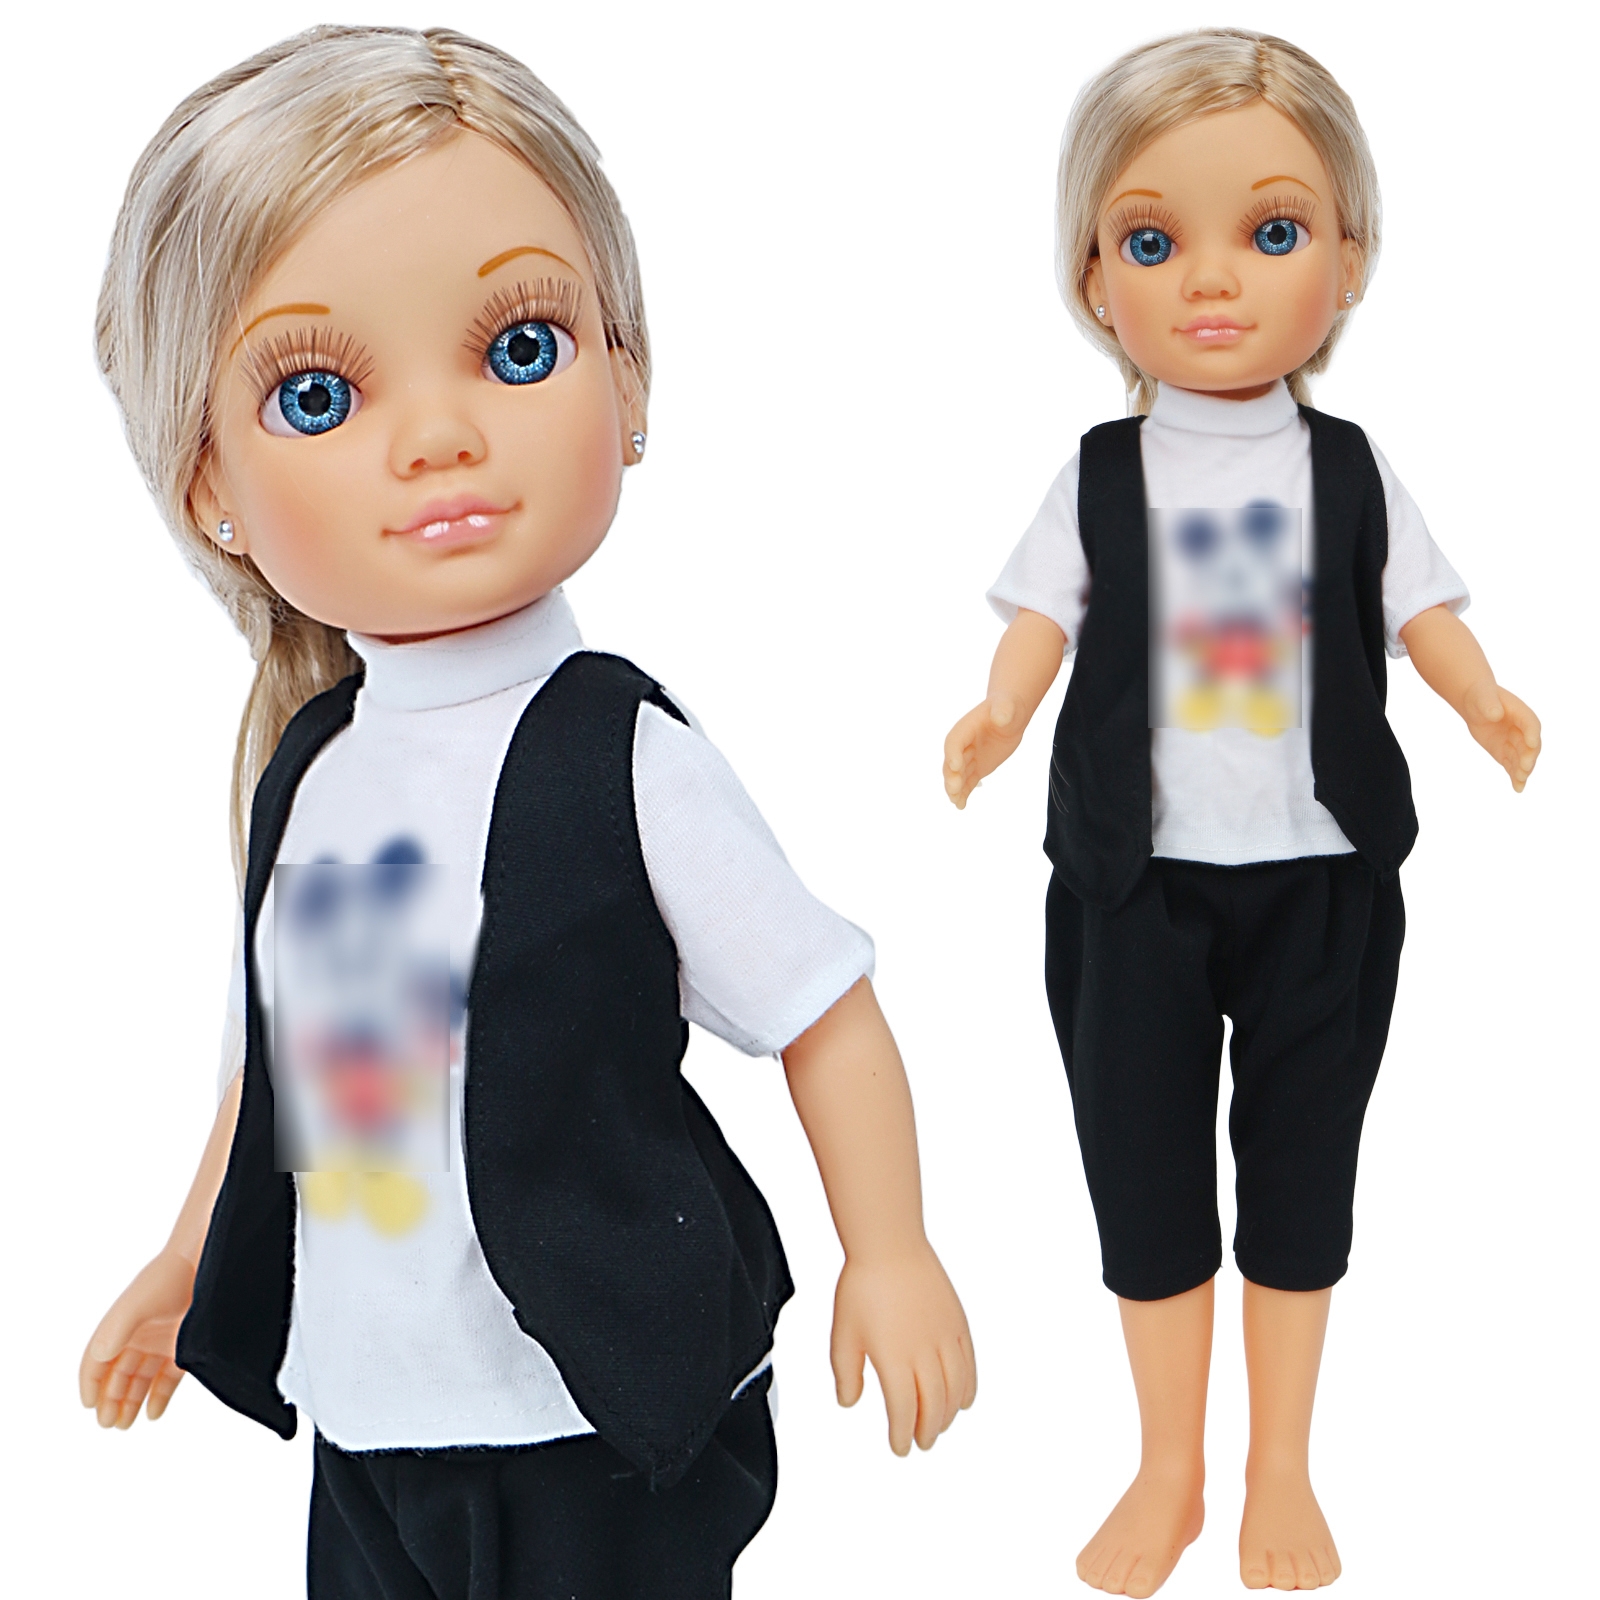 Limited Collection Doll Outfit For Nancy Doll Daily Wear Cartoon Black Jack T-shirt Blouses Doll Clothes Accessories Toy